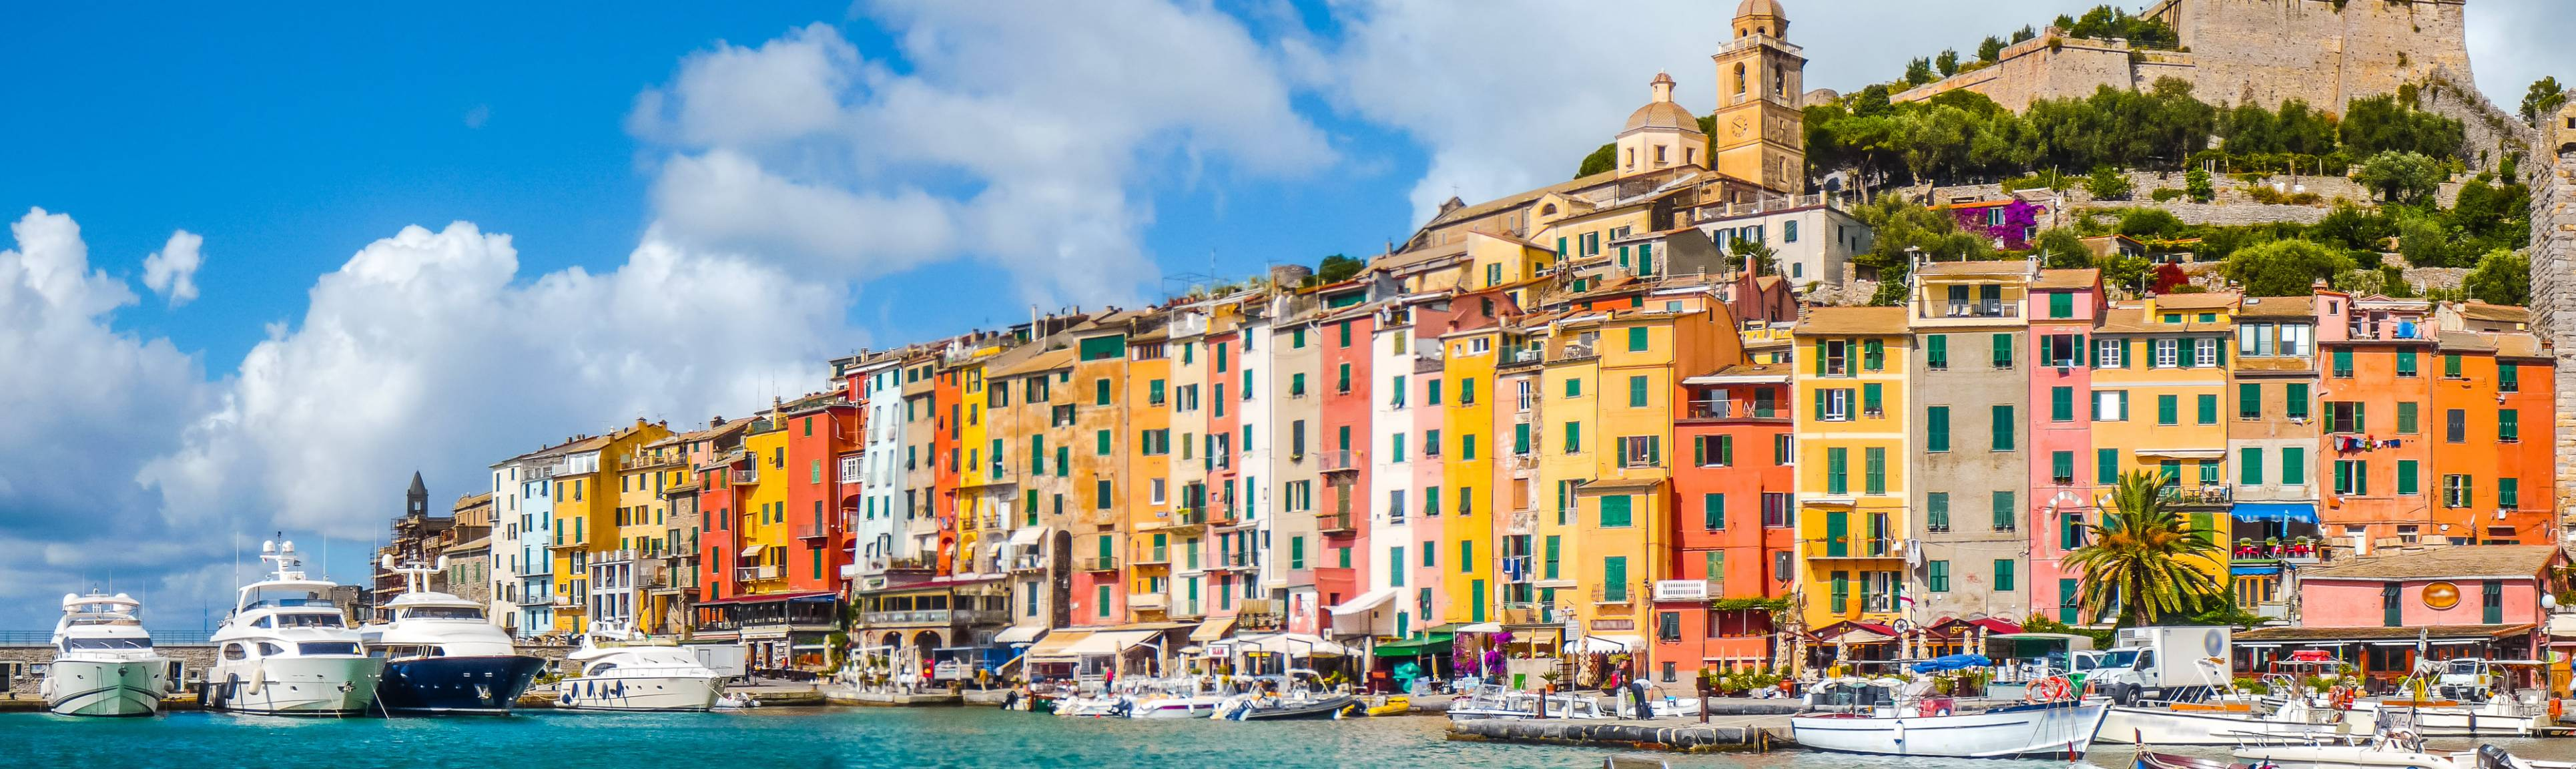 Brightly colored buildings along the marina at Portovenere Italy